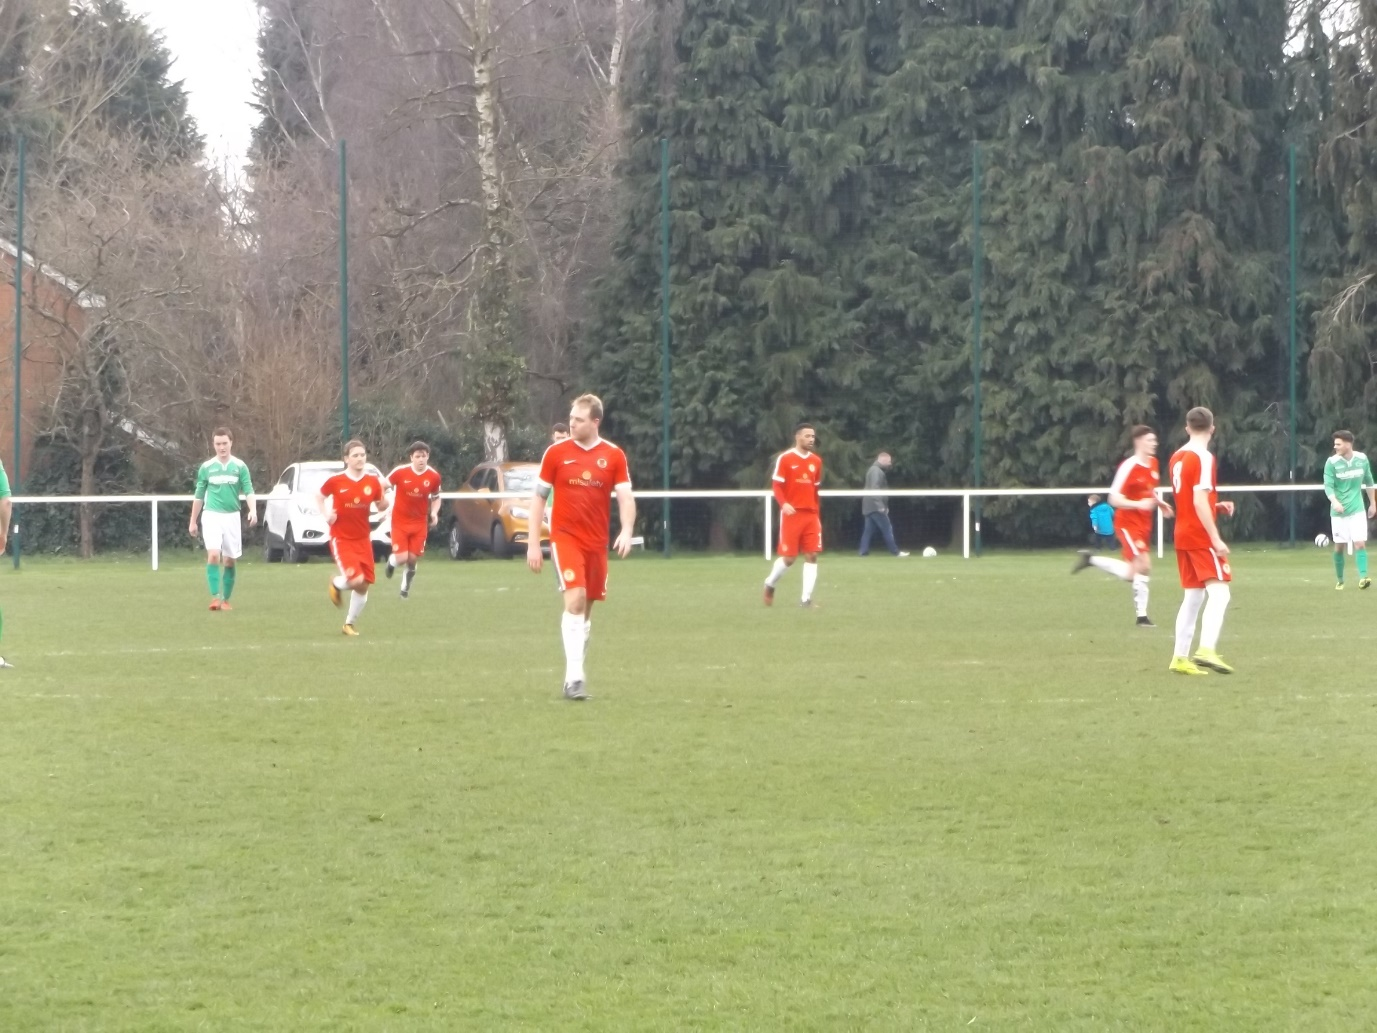 A two-second moment of elation then its quickly on for the Wood to try to score a winning goal, with seemingly greater reserves of energy than their opponents